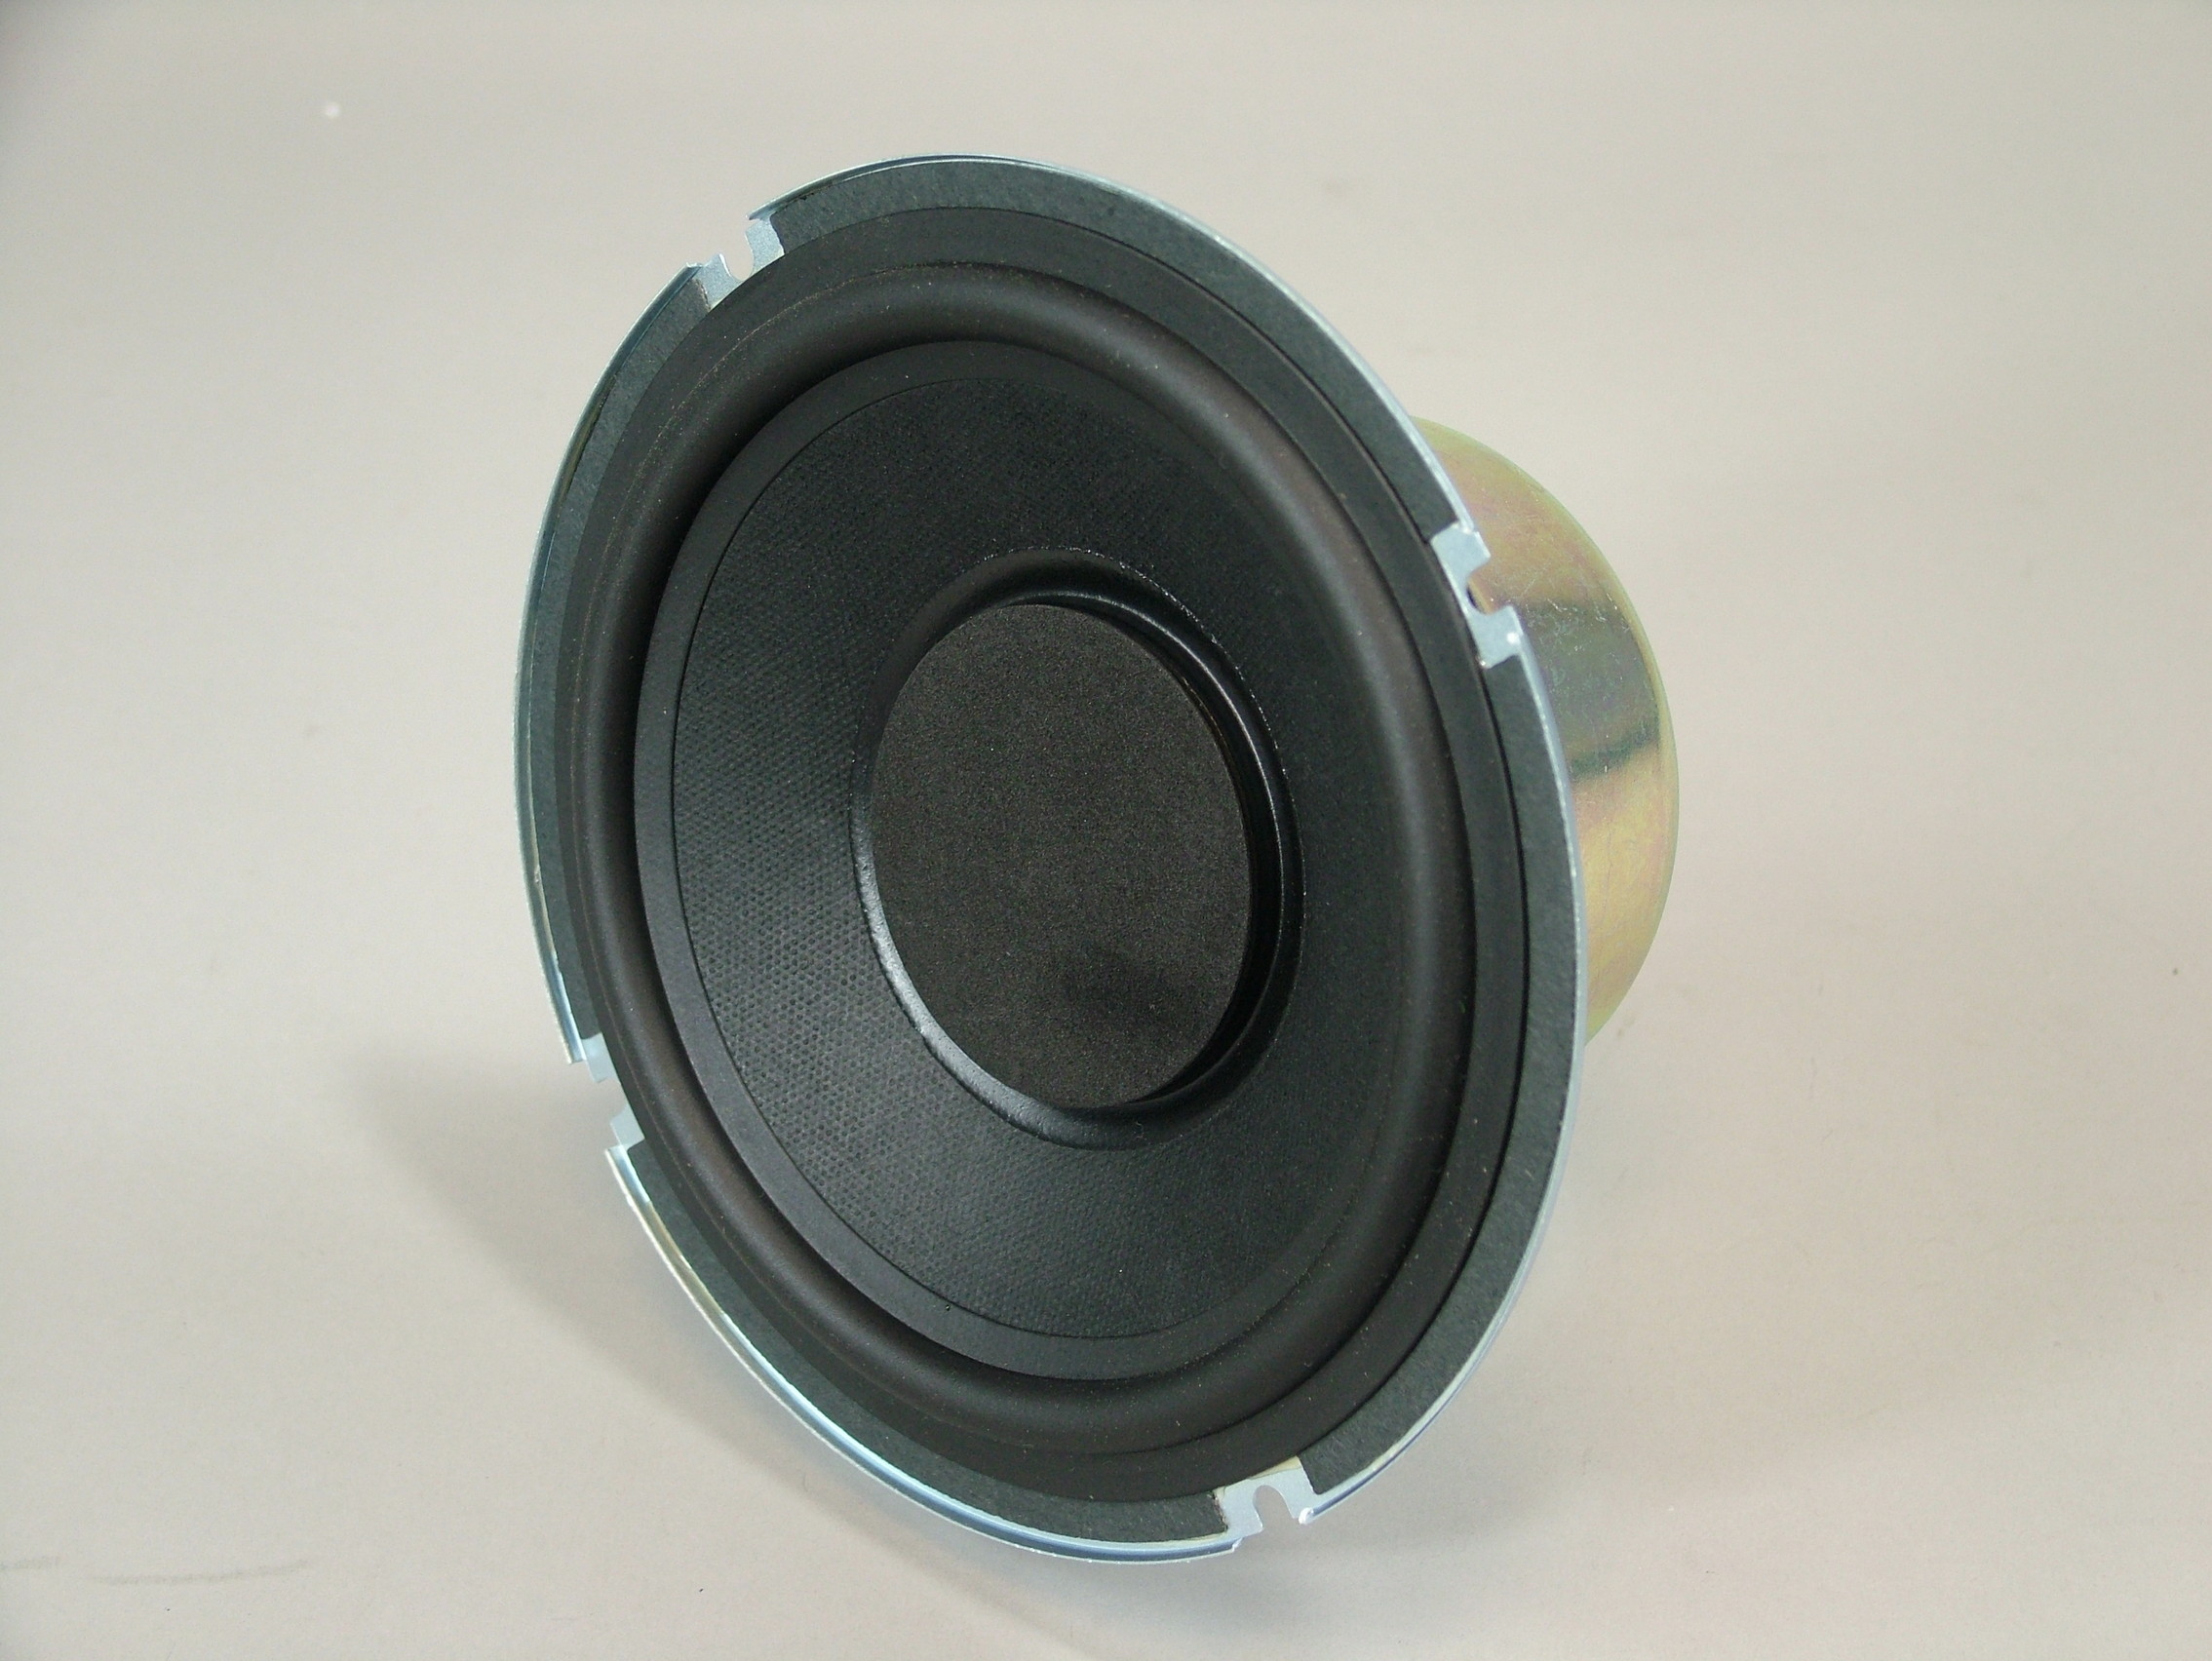 Audiophile Studio Reference Monitor 6 5